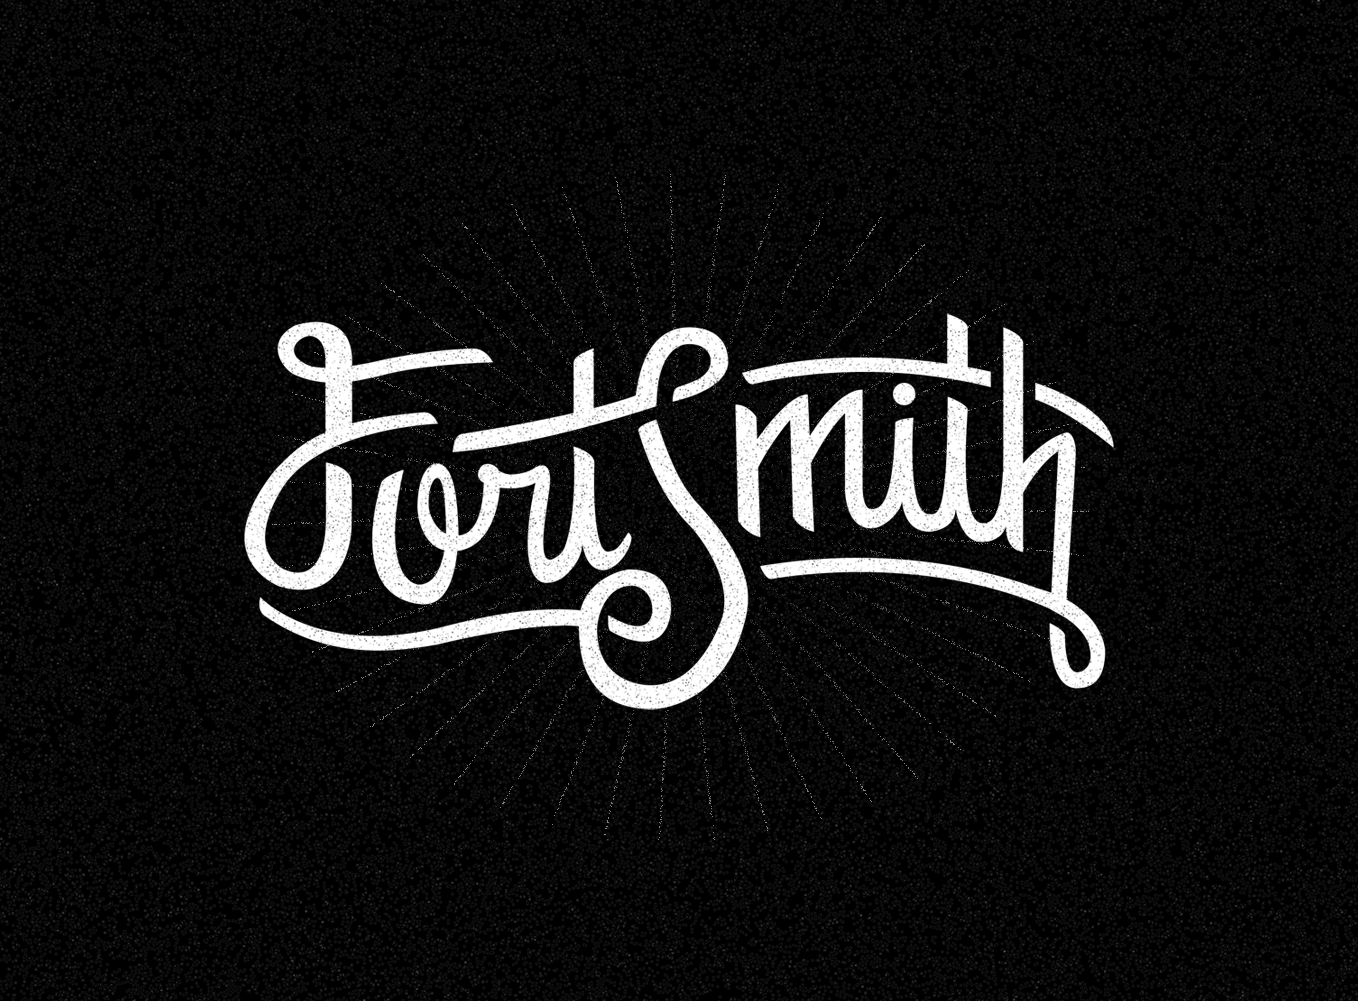 sam broom fort smith logo logotype hand lettering graphic design snapchat geofilter